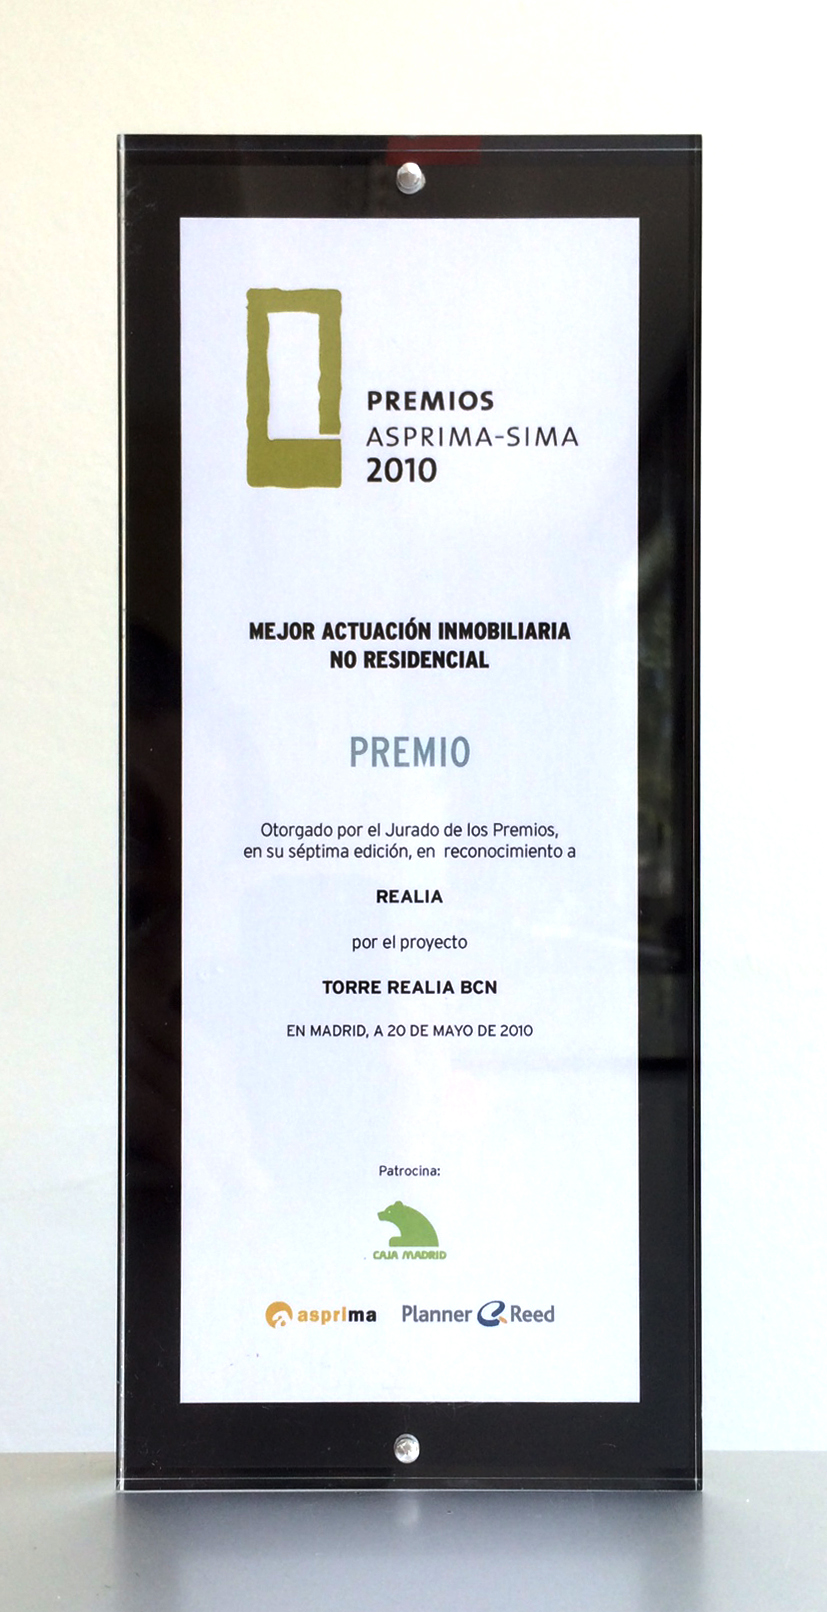 Asprima-Sima Awards 2010 – First Prize: Best Non-Residential Real Estate Performance